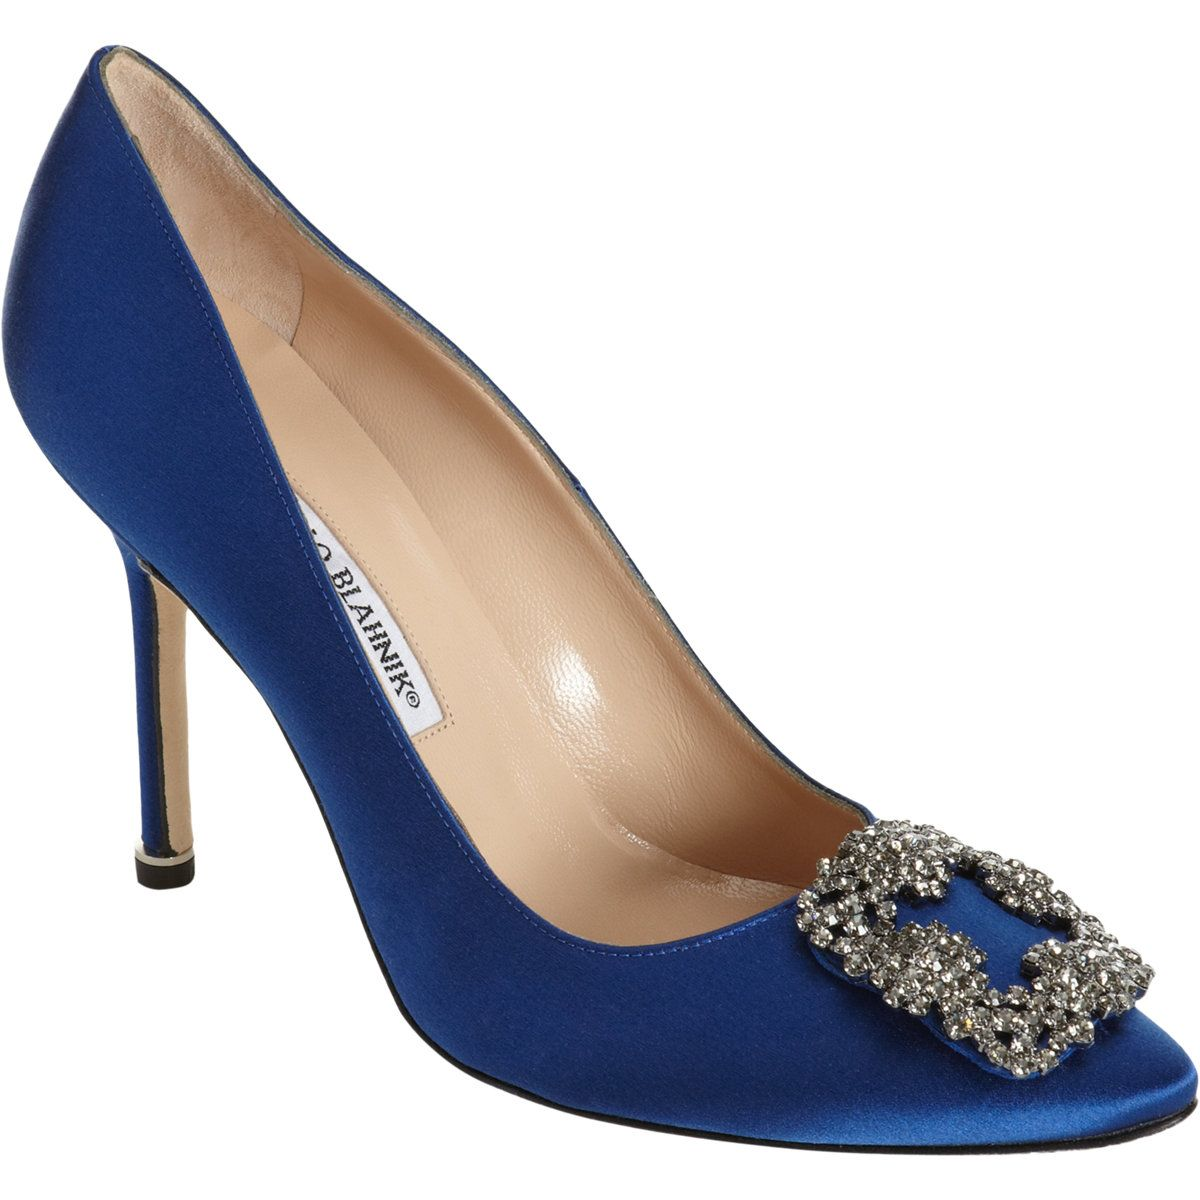 Blue shoes in sex and the city